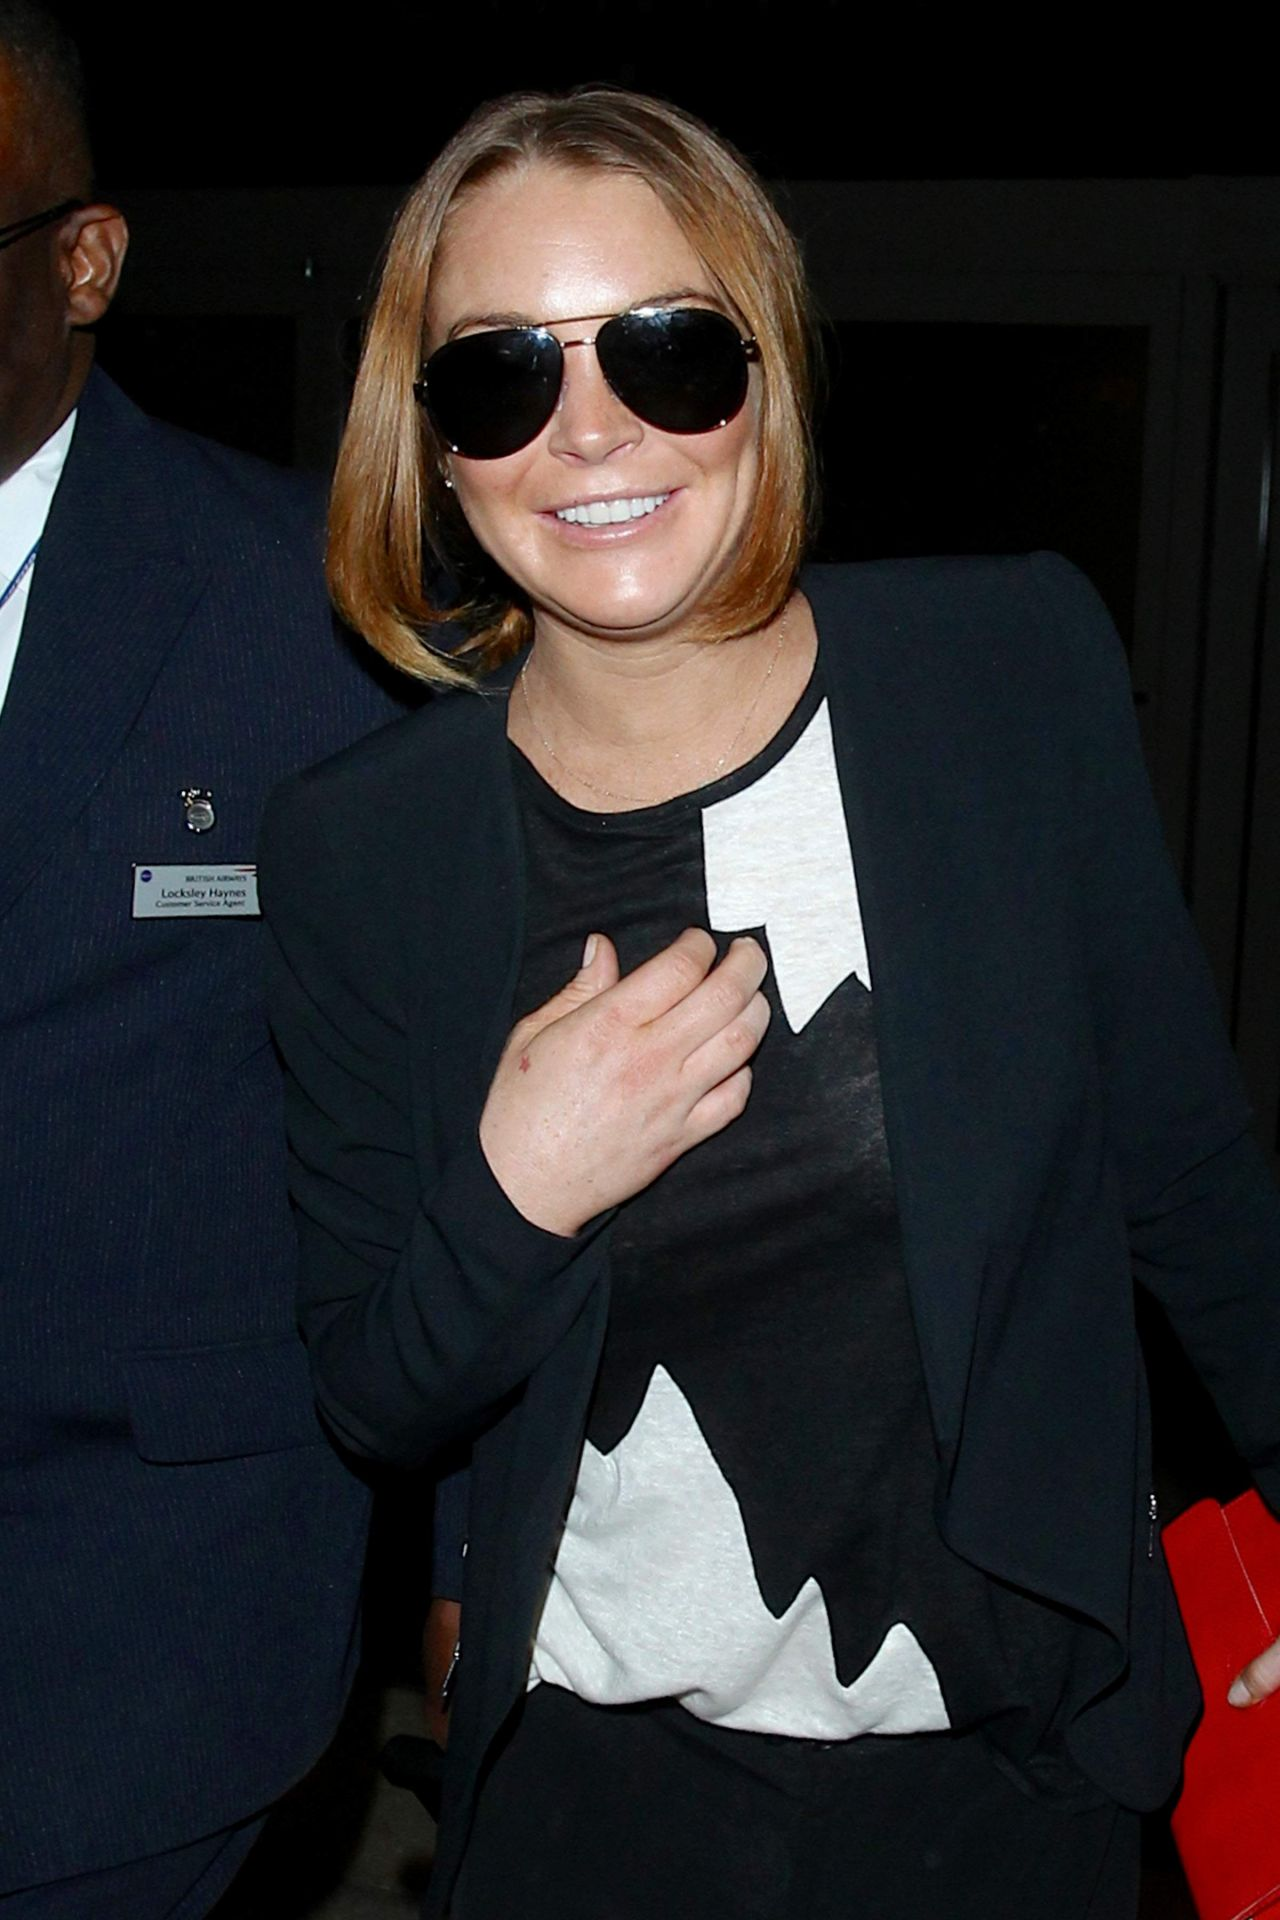 Lindsay Lohan Arriving on a flight at LAX Airport in Los Angeles - December 2014